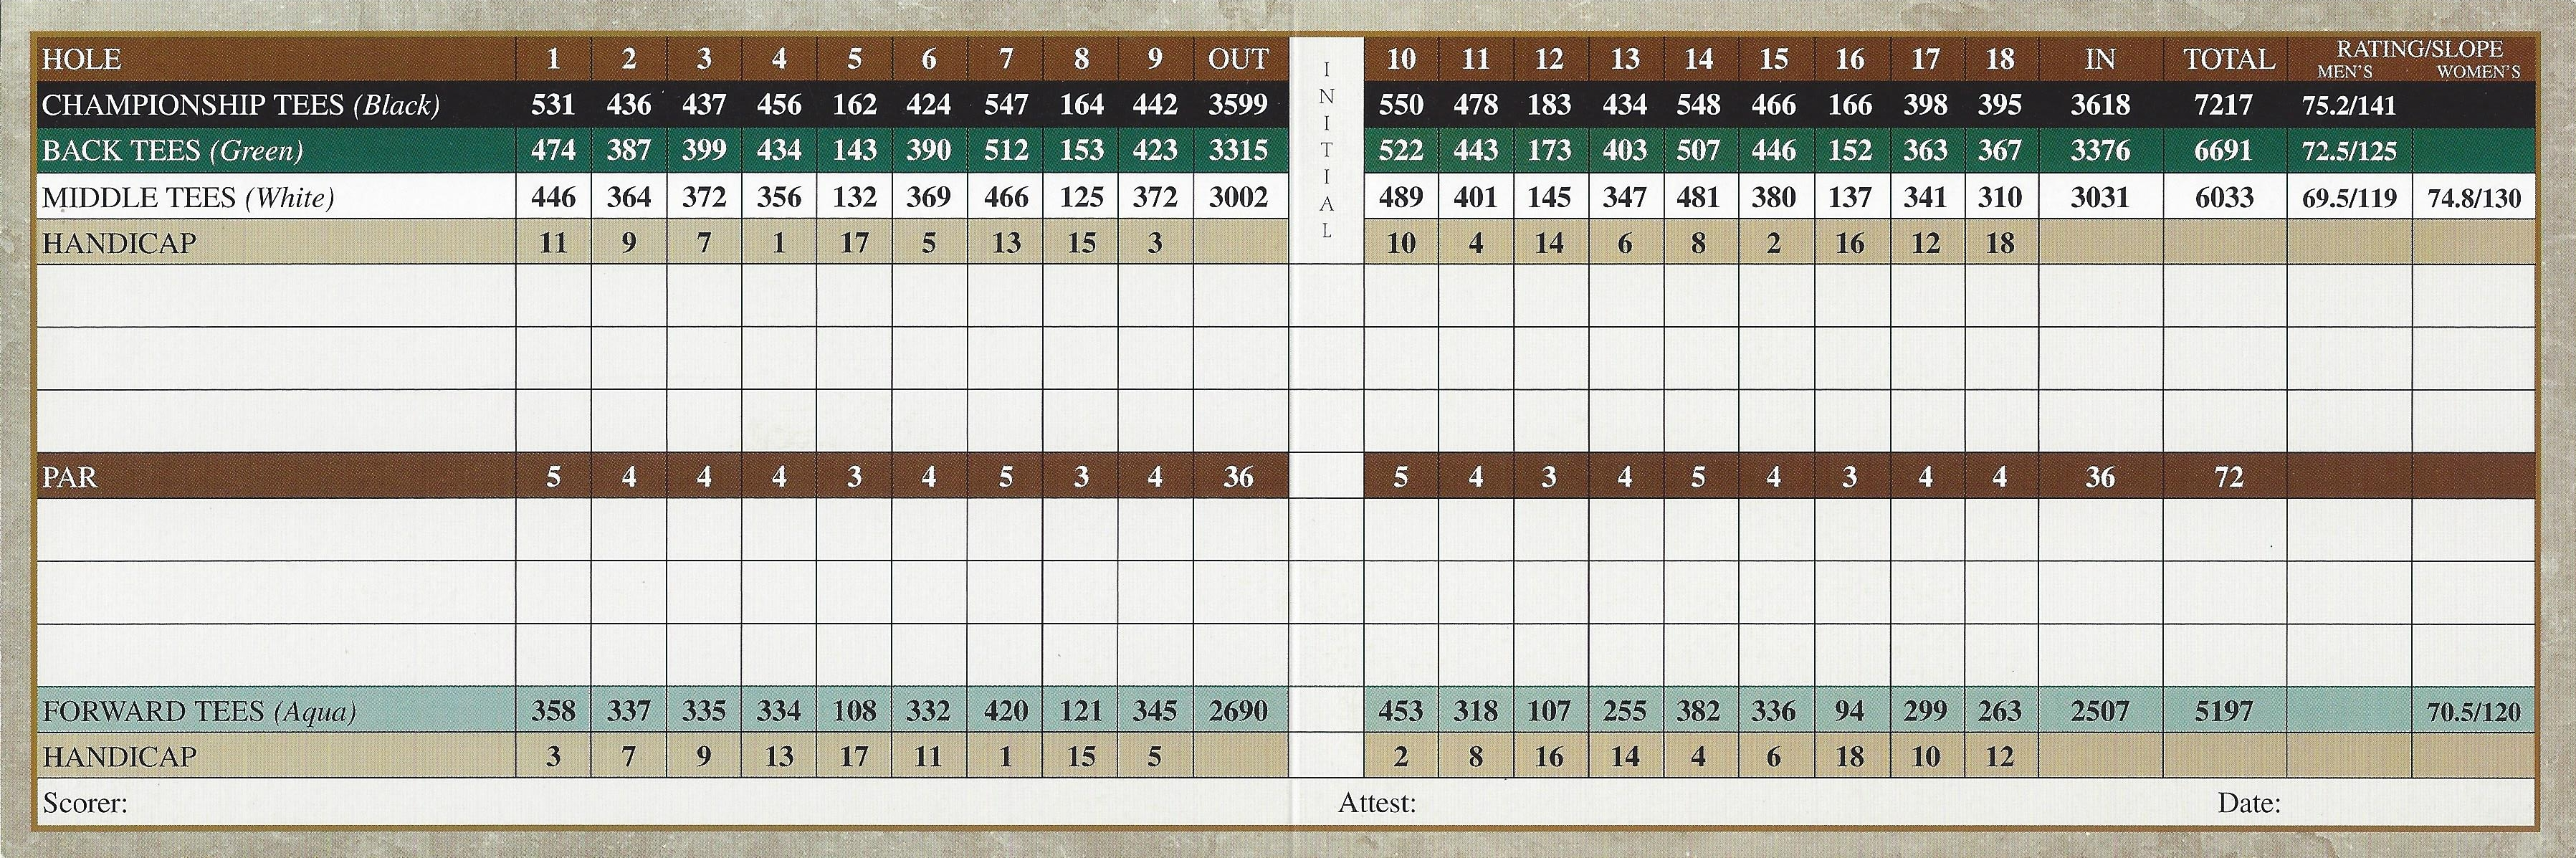 Score Card for The Mustang  Course at Lely Resort Front